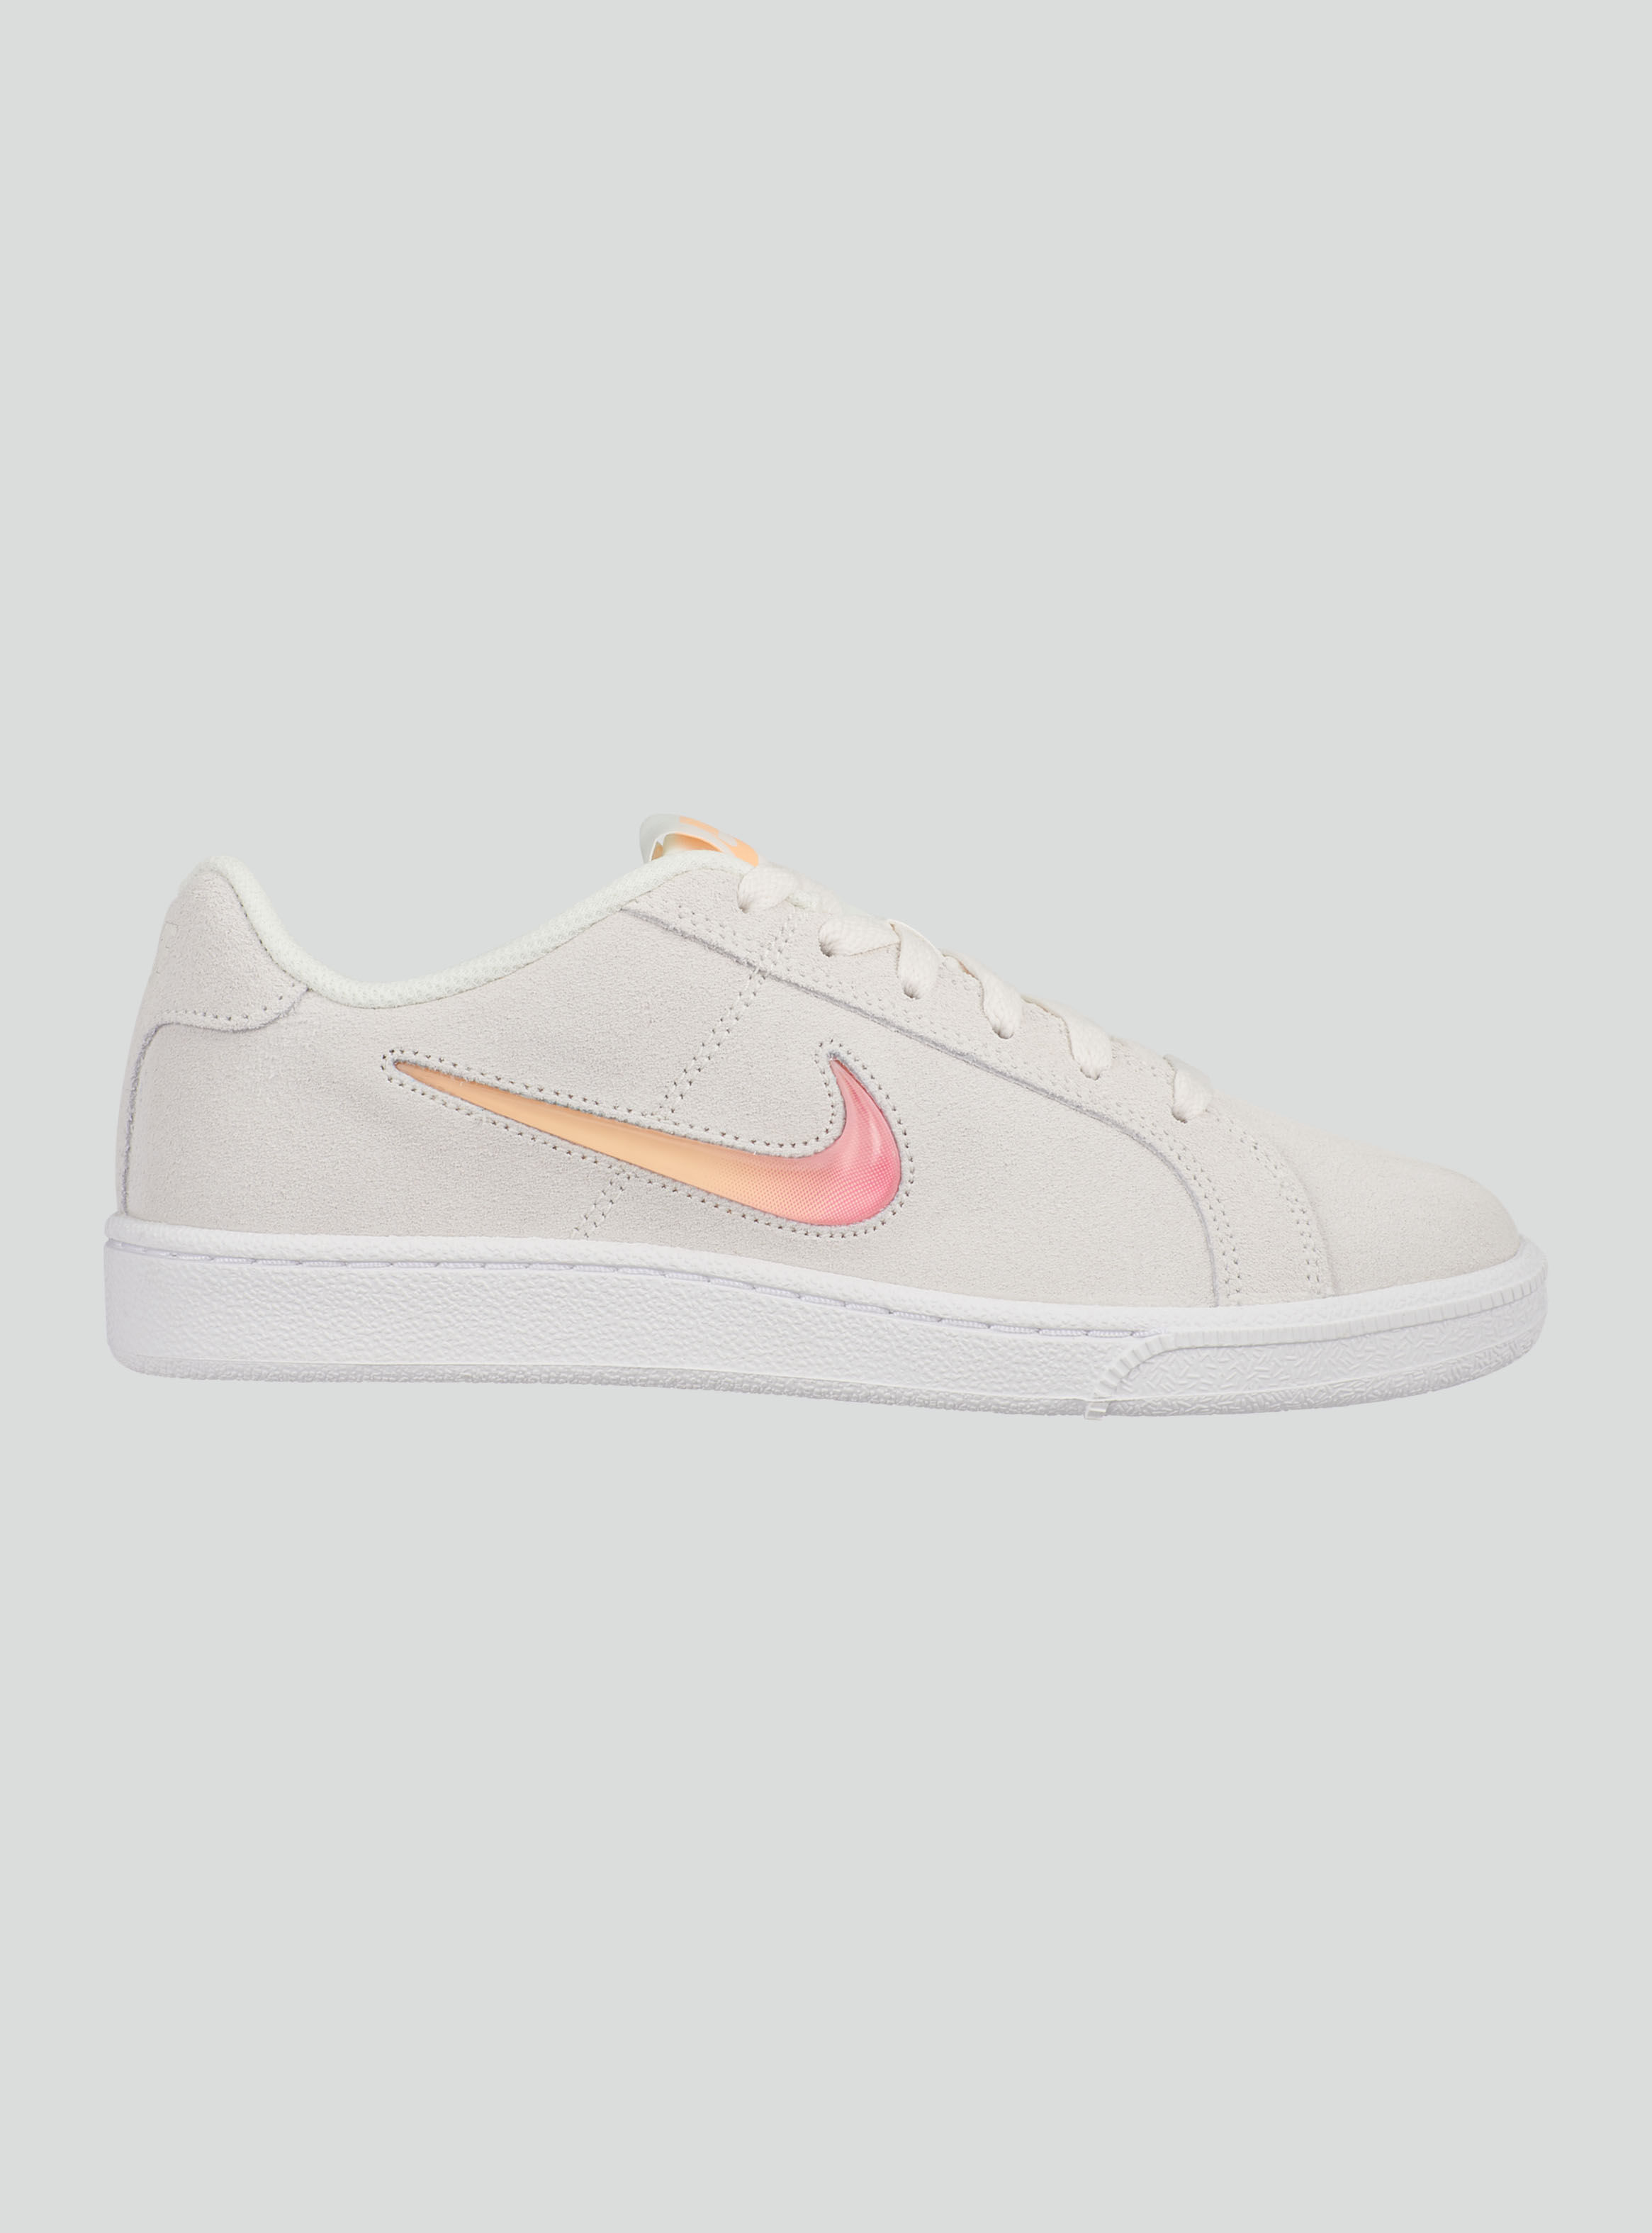 court royale nike mujer